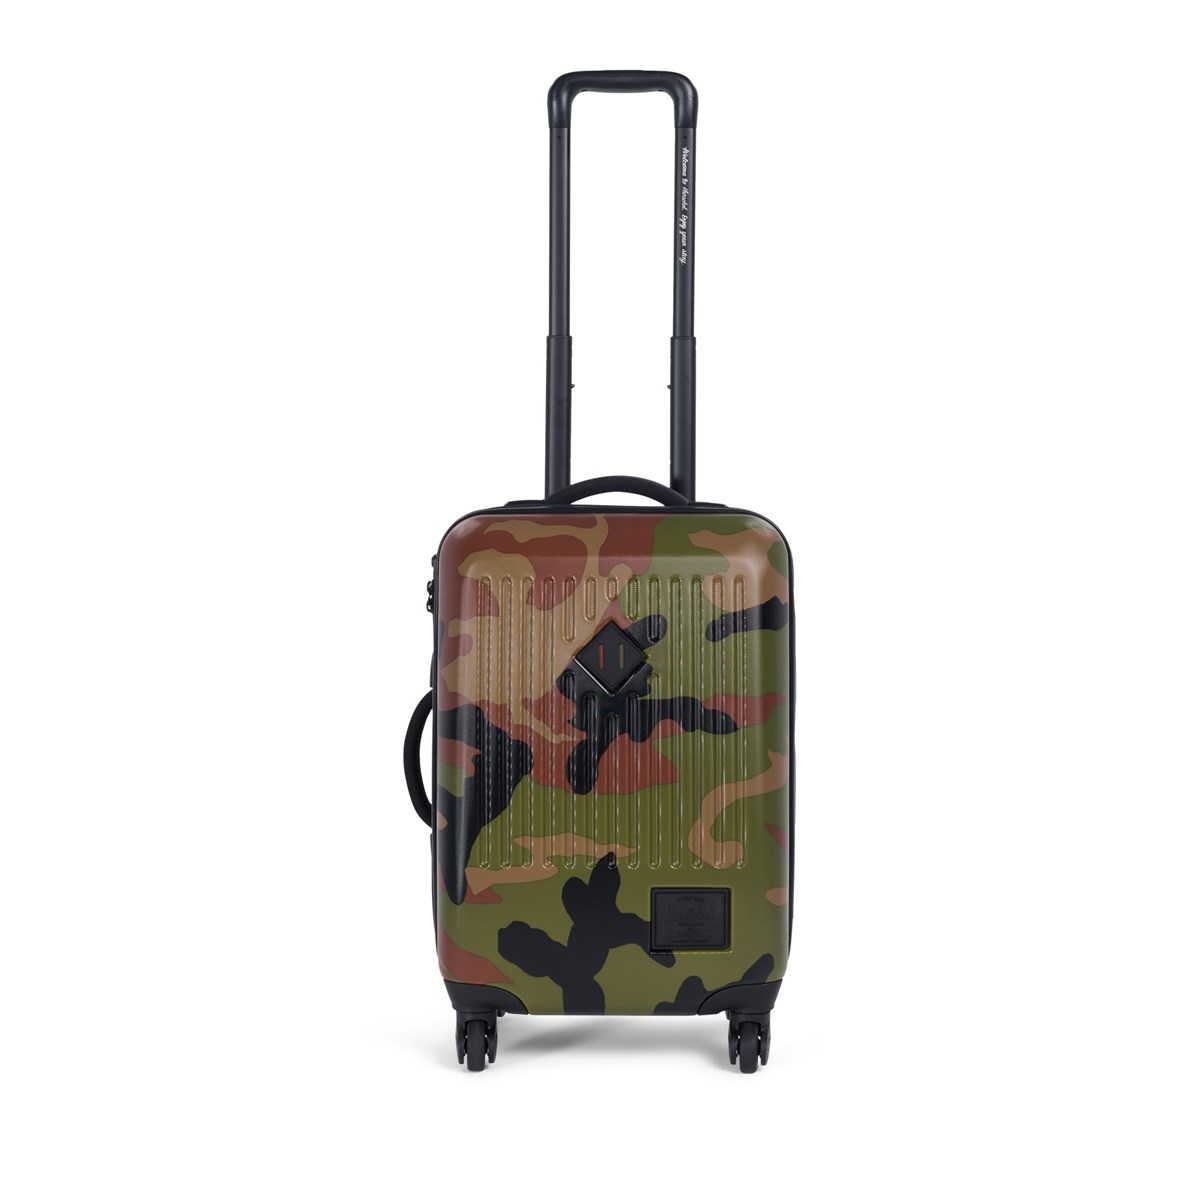 Trade Small Camo Carry-On Luggage